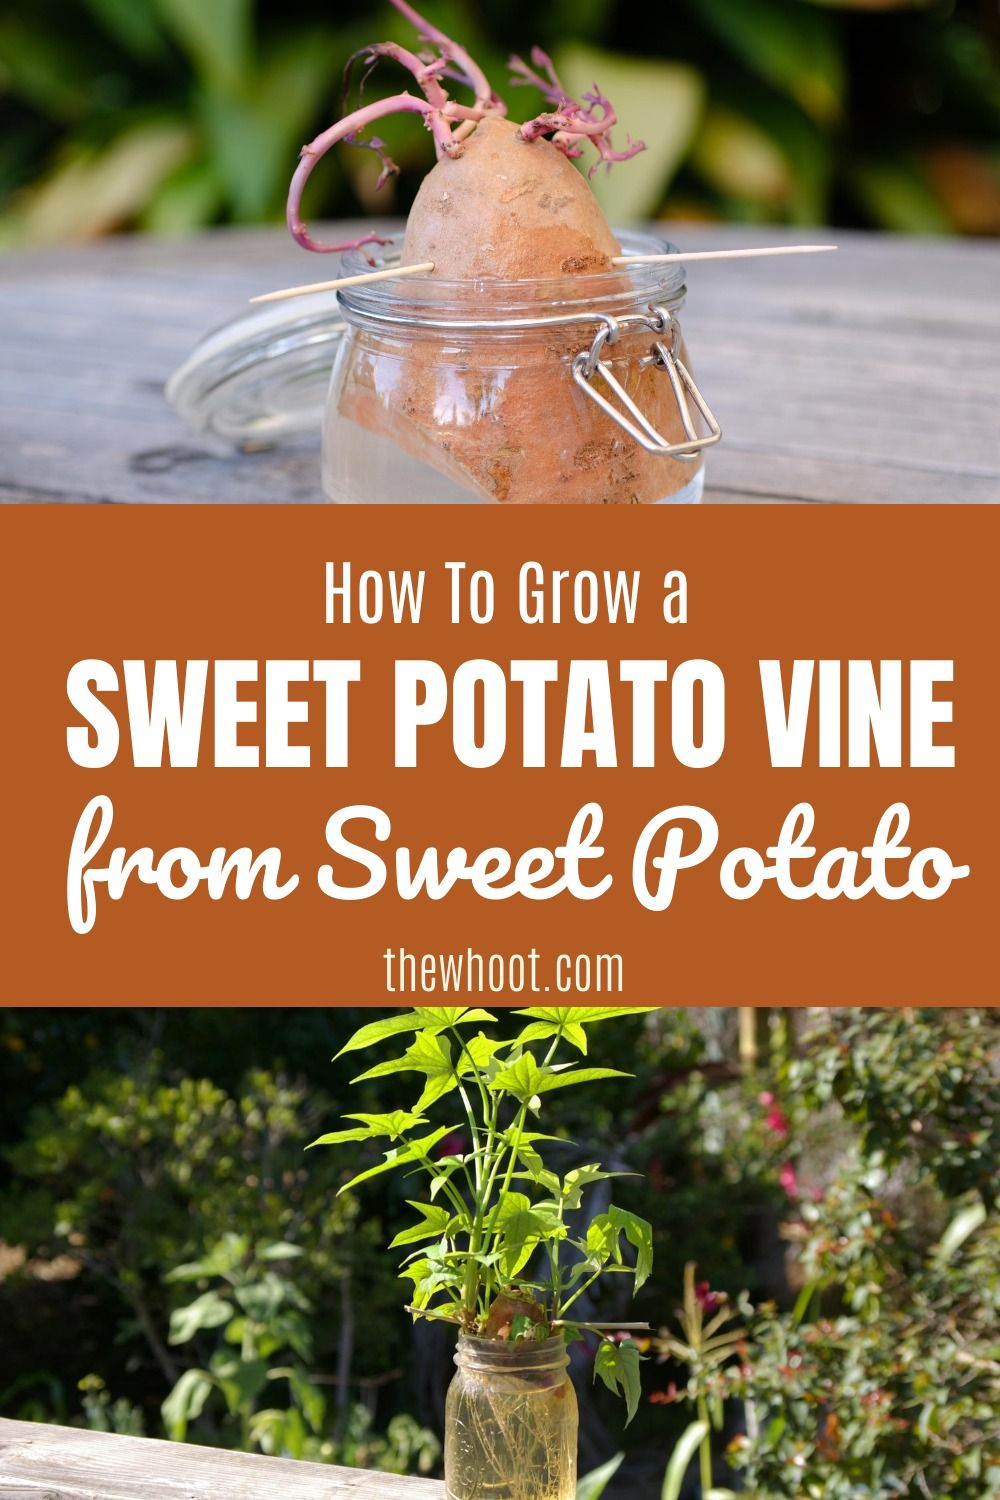 How to grow a sweet potato vine from a sweet potato in